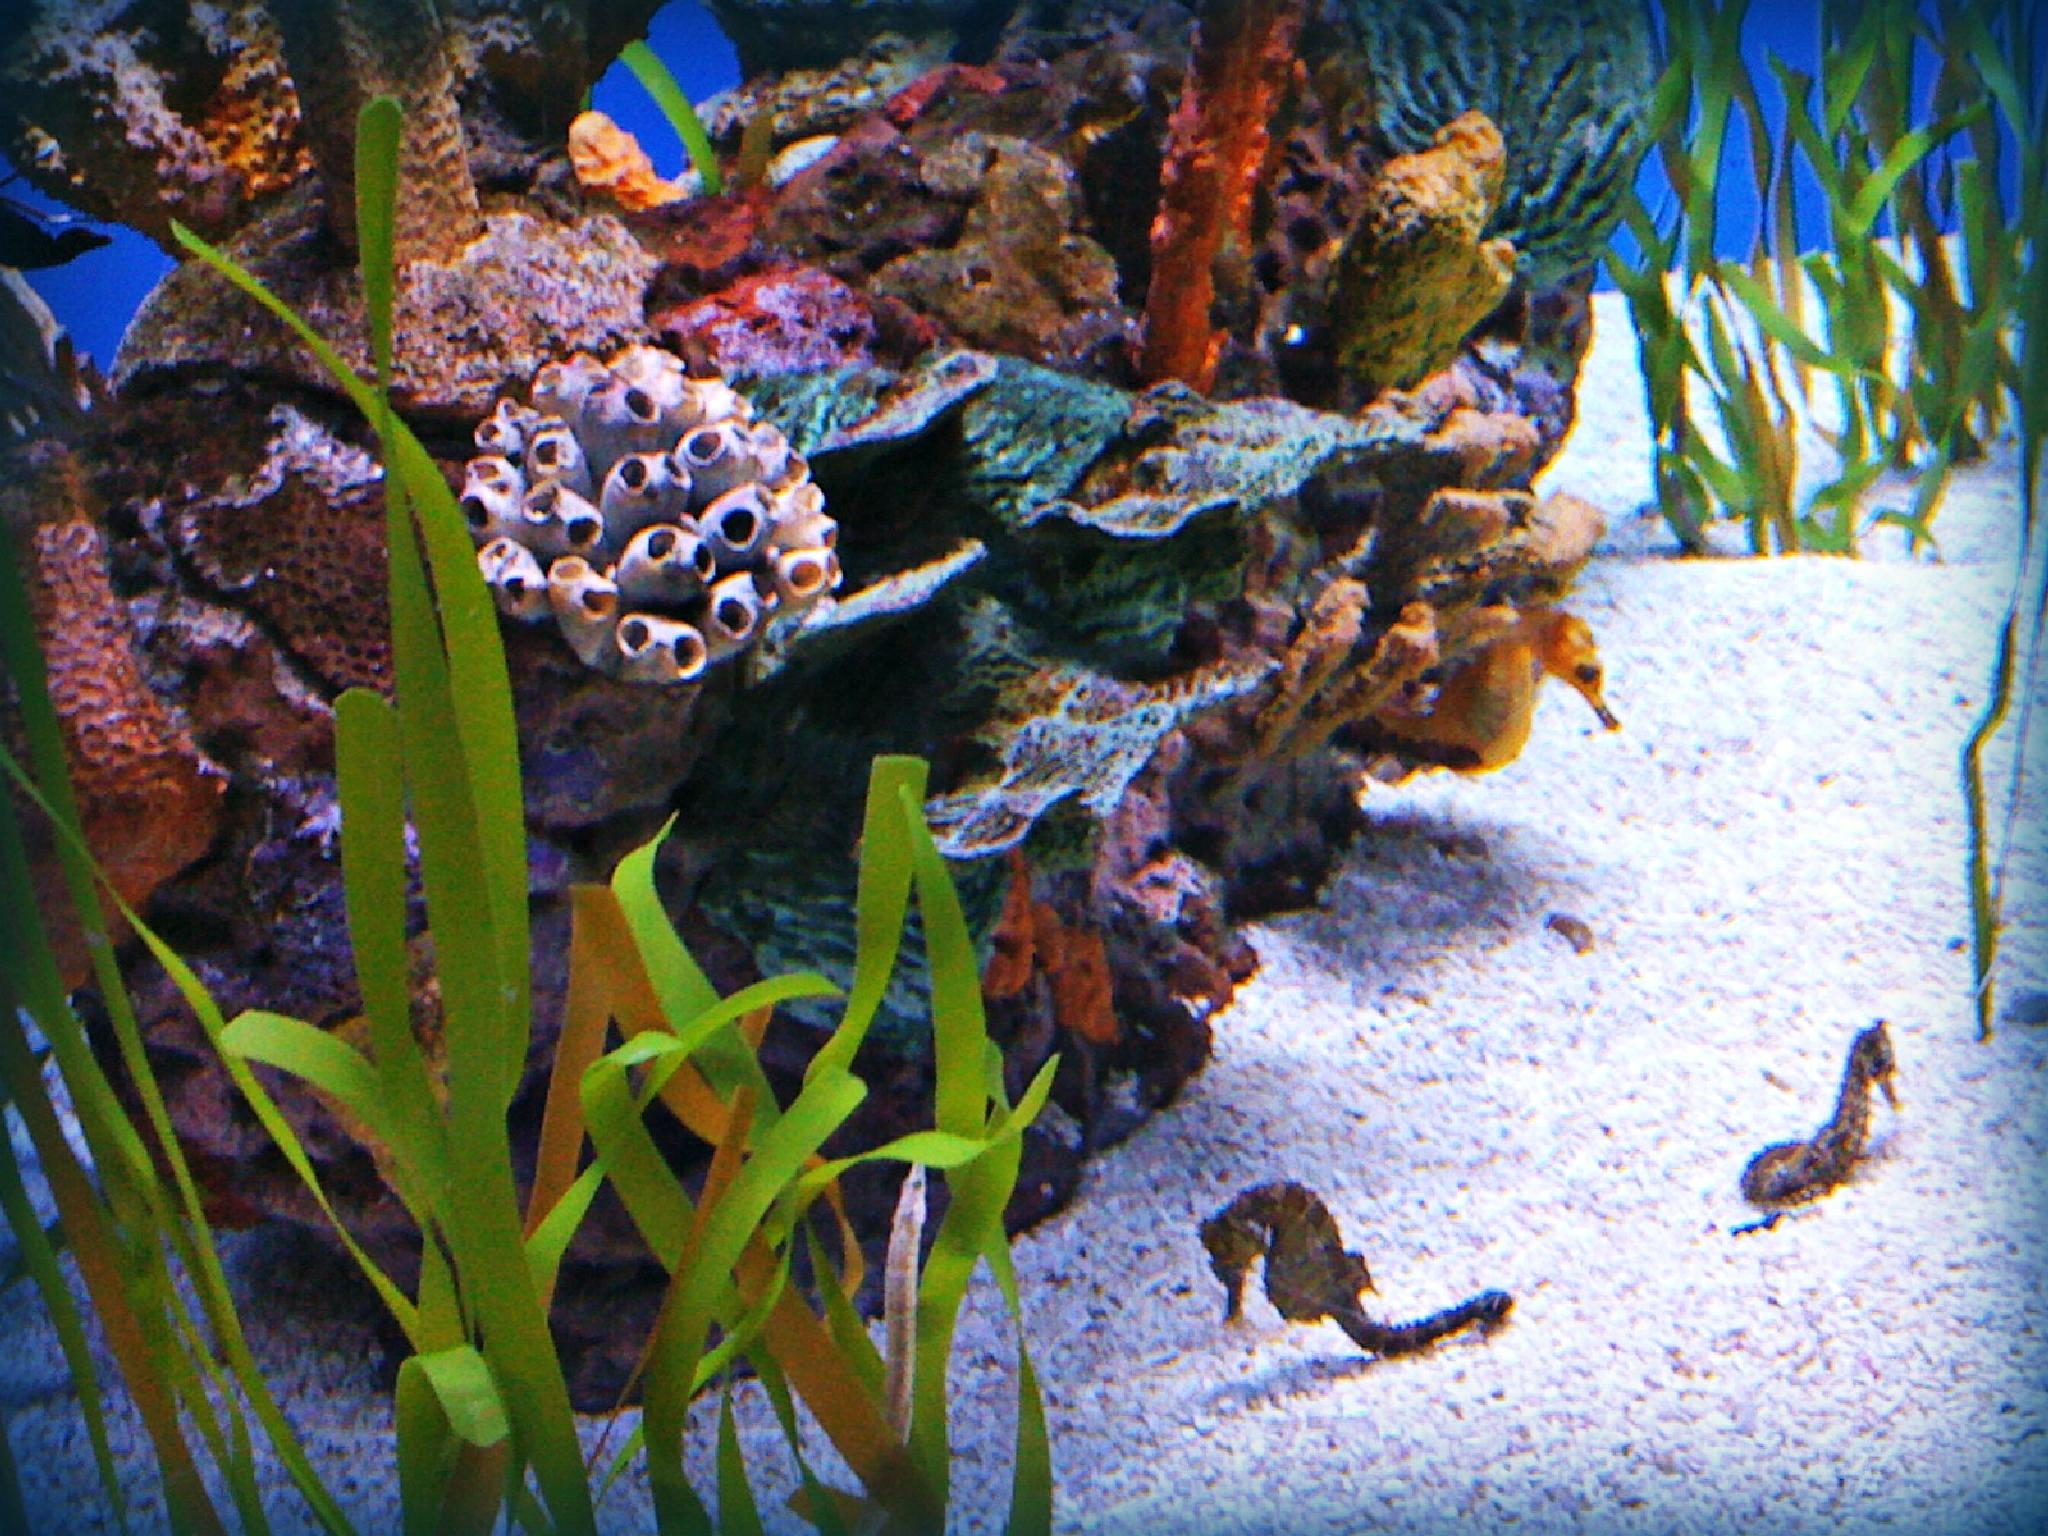 Seahorse's by lindandarrell